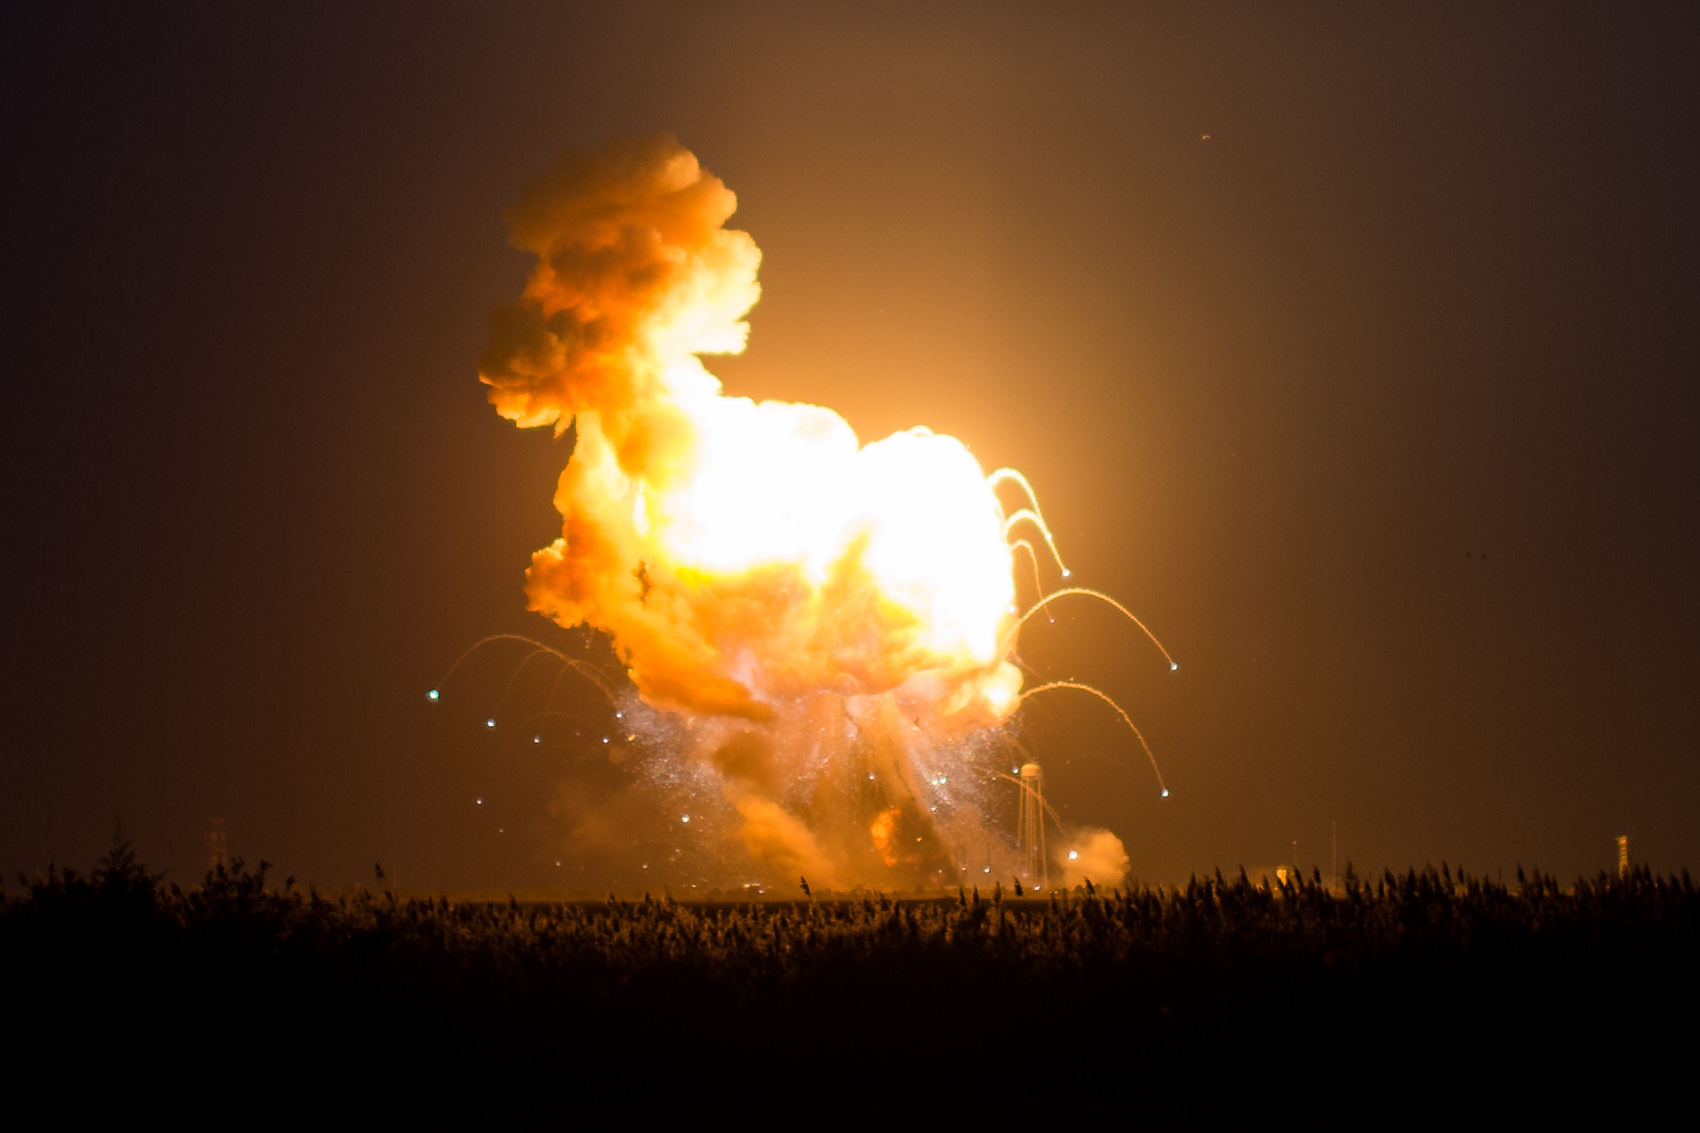 nasa rocket failure - photo #41